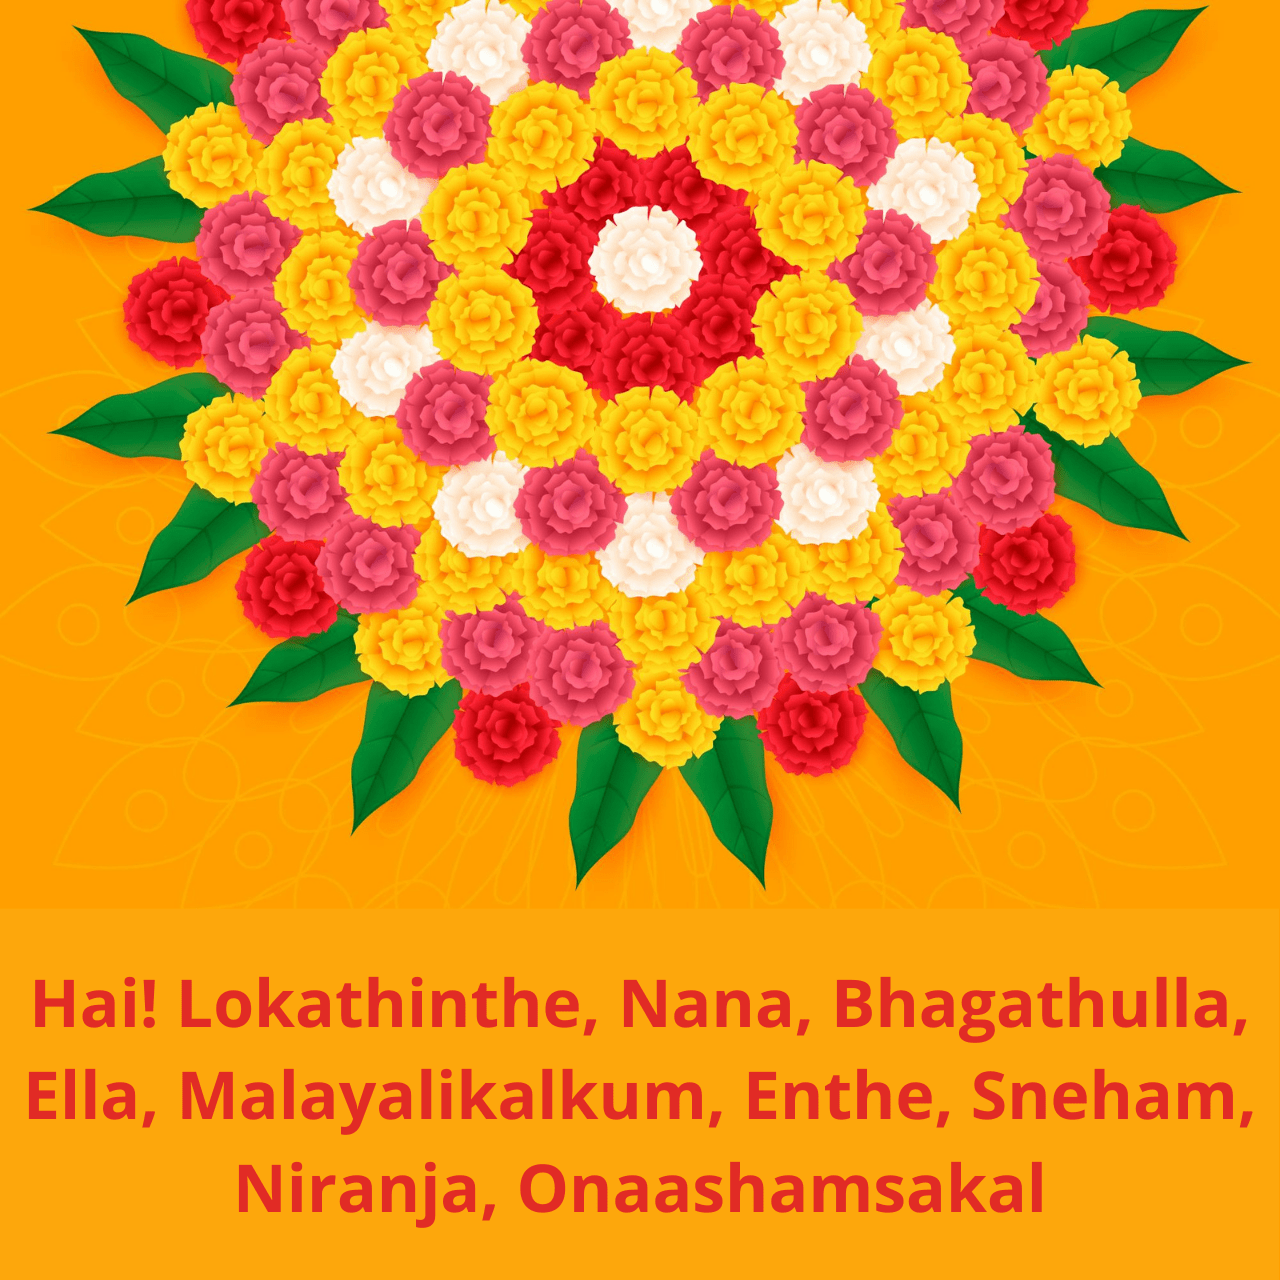 Onam 2021 Malayalam Wishes, Messages, Quotes, Greetings, Messages, Status, and HD Images to Share